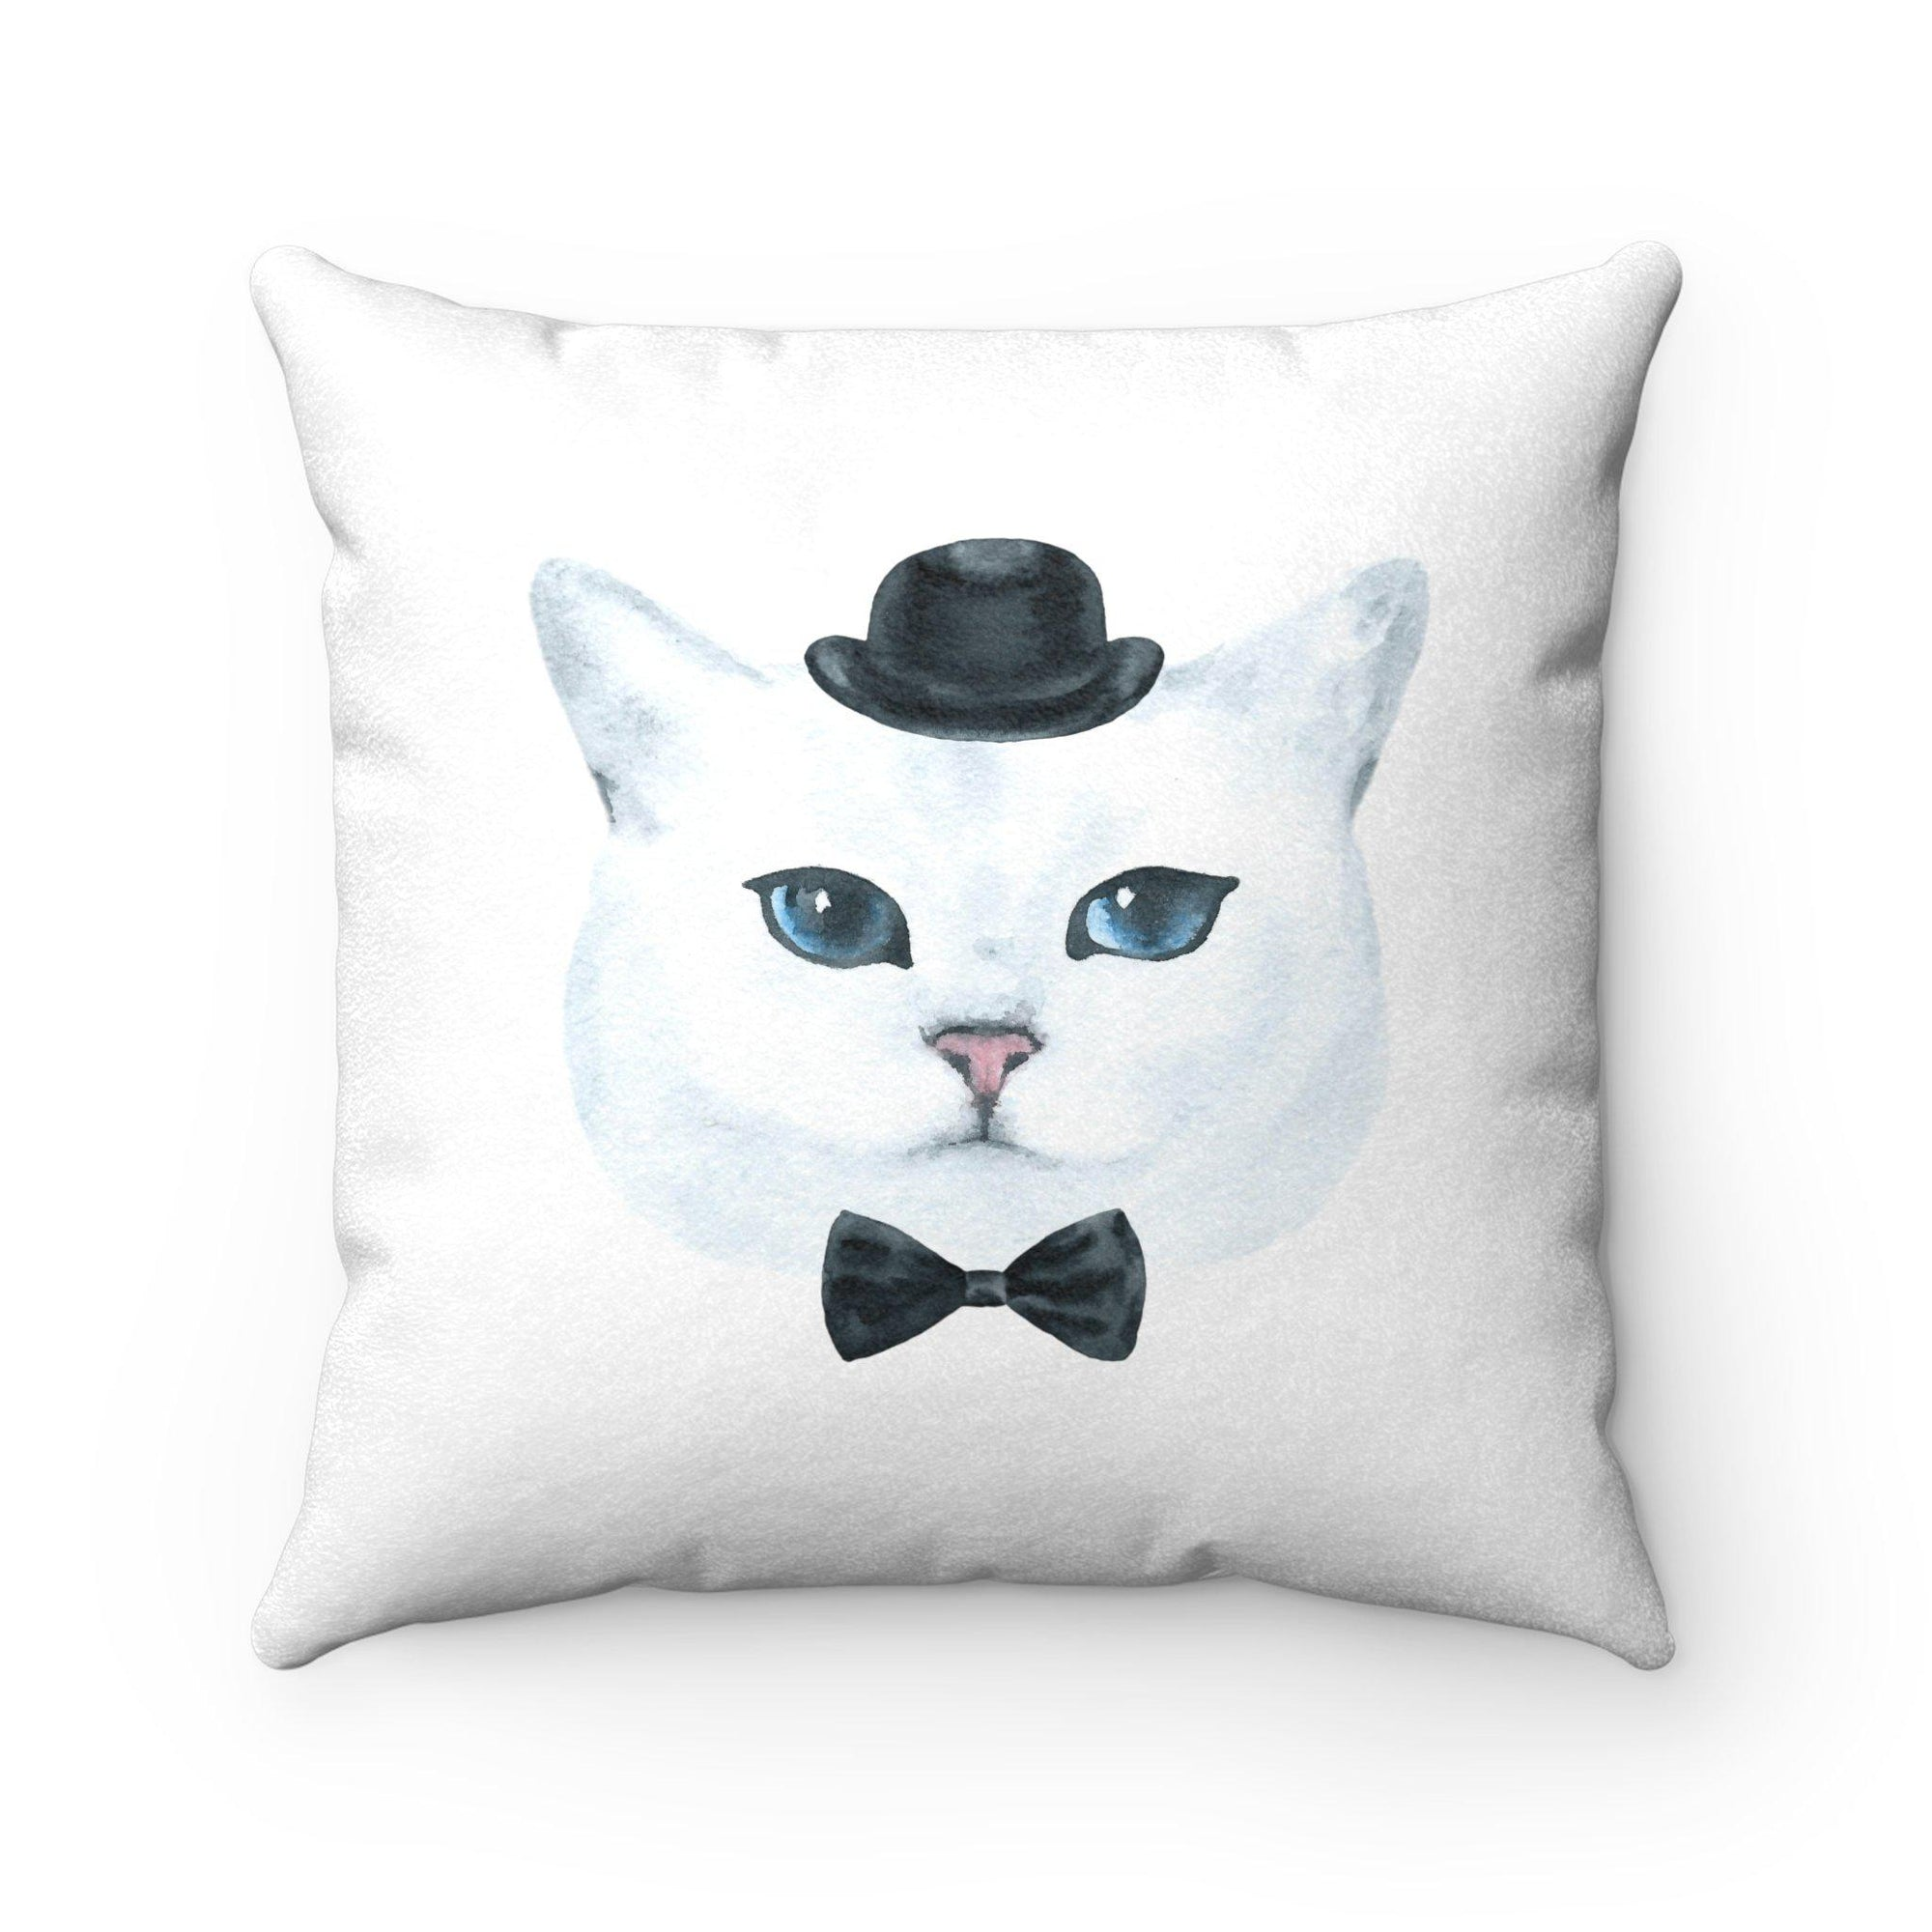 Maison d'Elite cat with hat decorative cushion-Home Decor - Decorative Accents - Pillows & Throws - Decorative Pillows-Maison d'Elite-14x14-Black/White-Faux suede-Très Elite